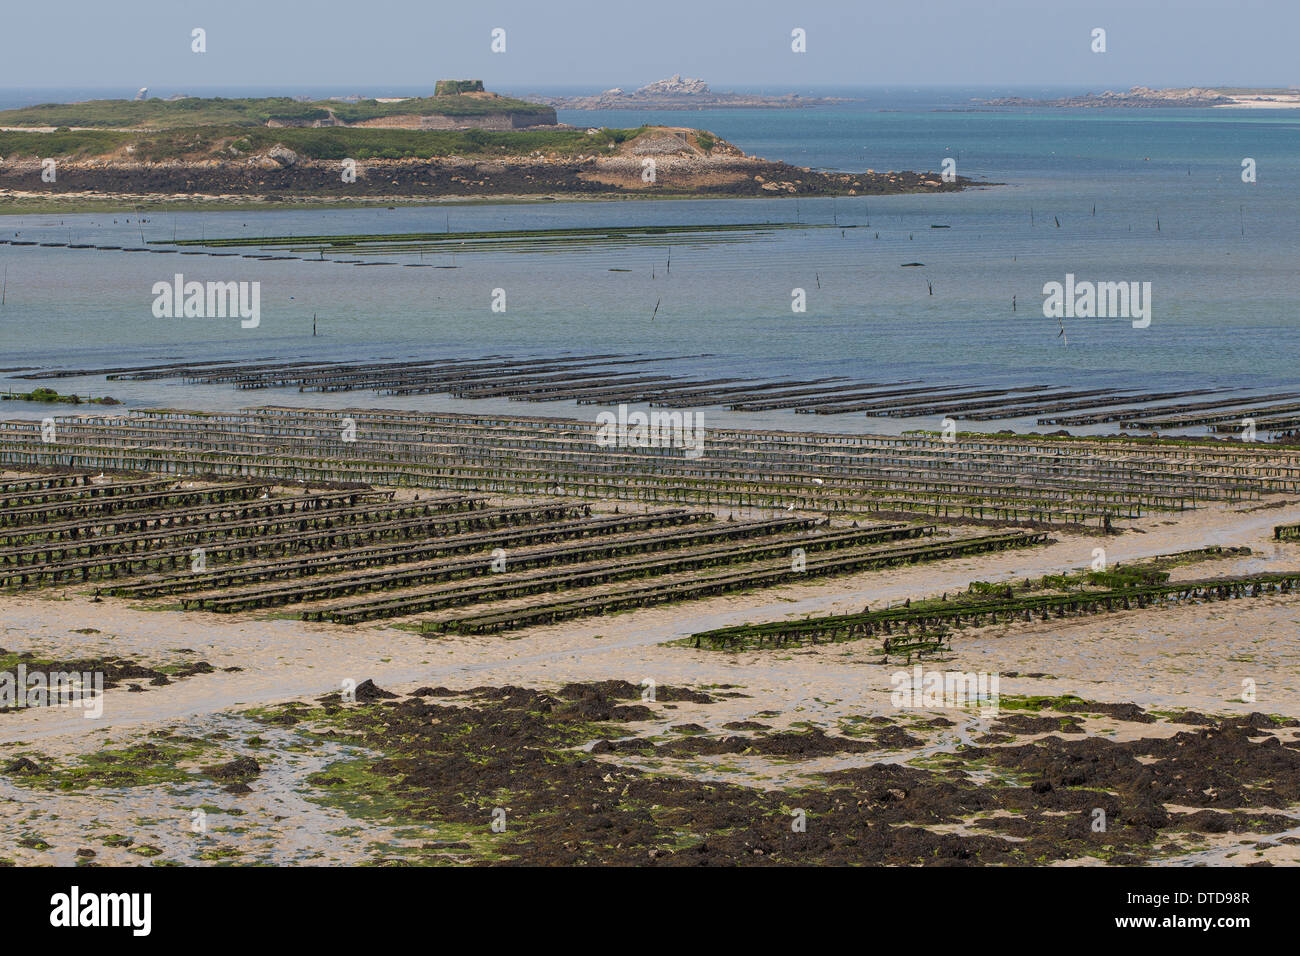 oyster culture, oyster farming, aquaculture, mariculture, Pacific oyster, Austernzucht, Pazifische Auster, Crassostrea Stock Photo